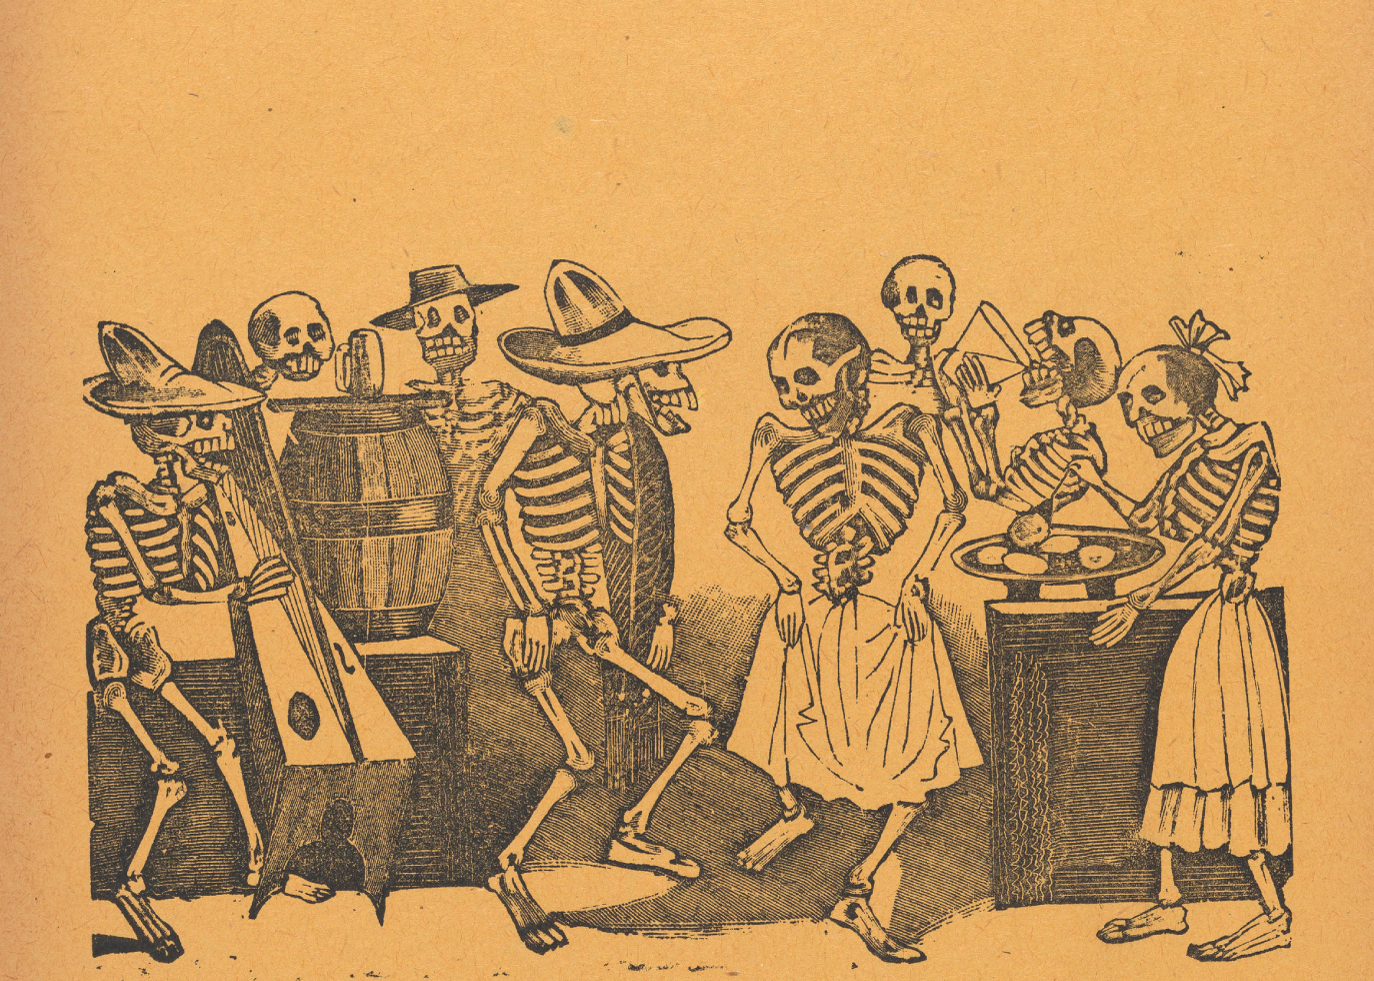 Page 8: skeletons dancing, from '36 Grabados' by José Guadalupe Posada